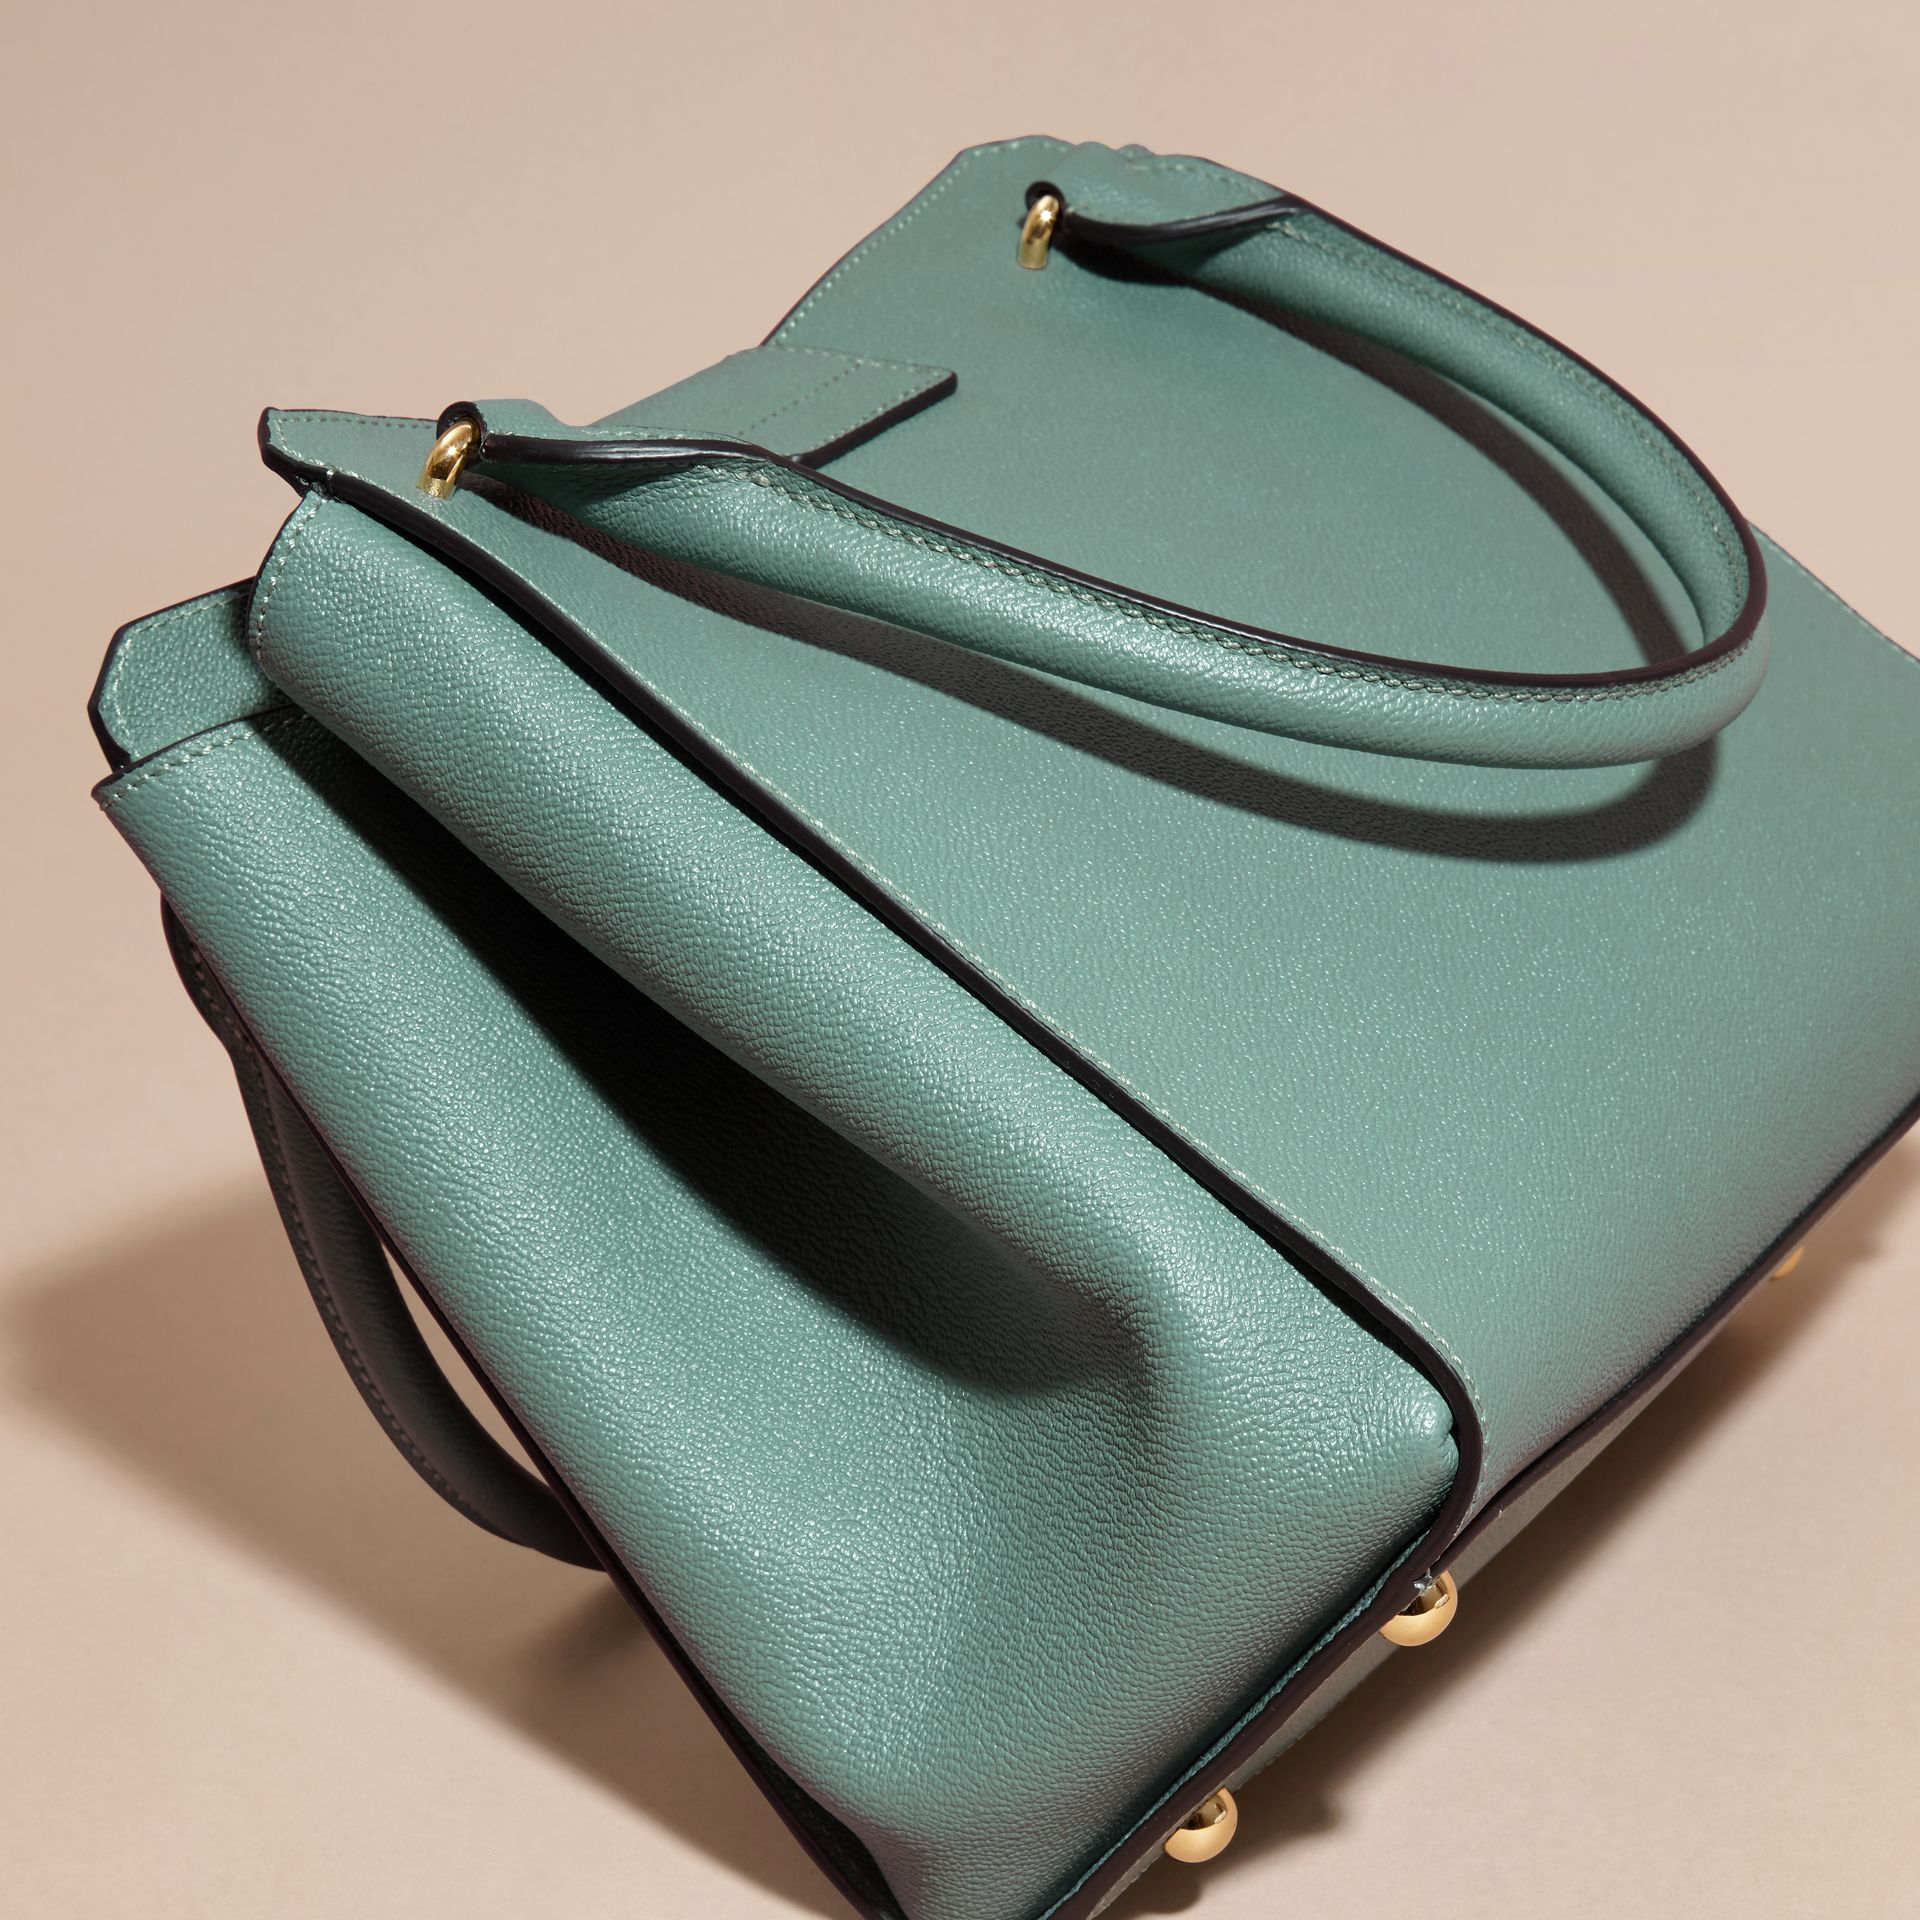 The Medium Buckle Tote in Grainy Leather in Eucalyptus Green - gallery image 4